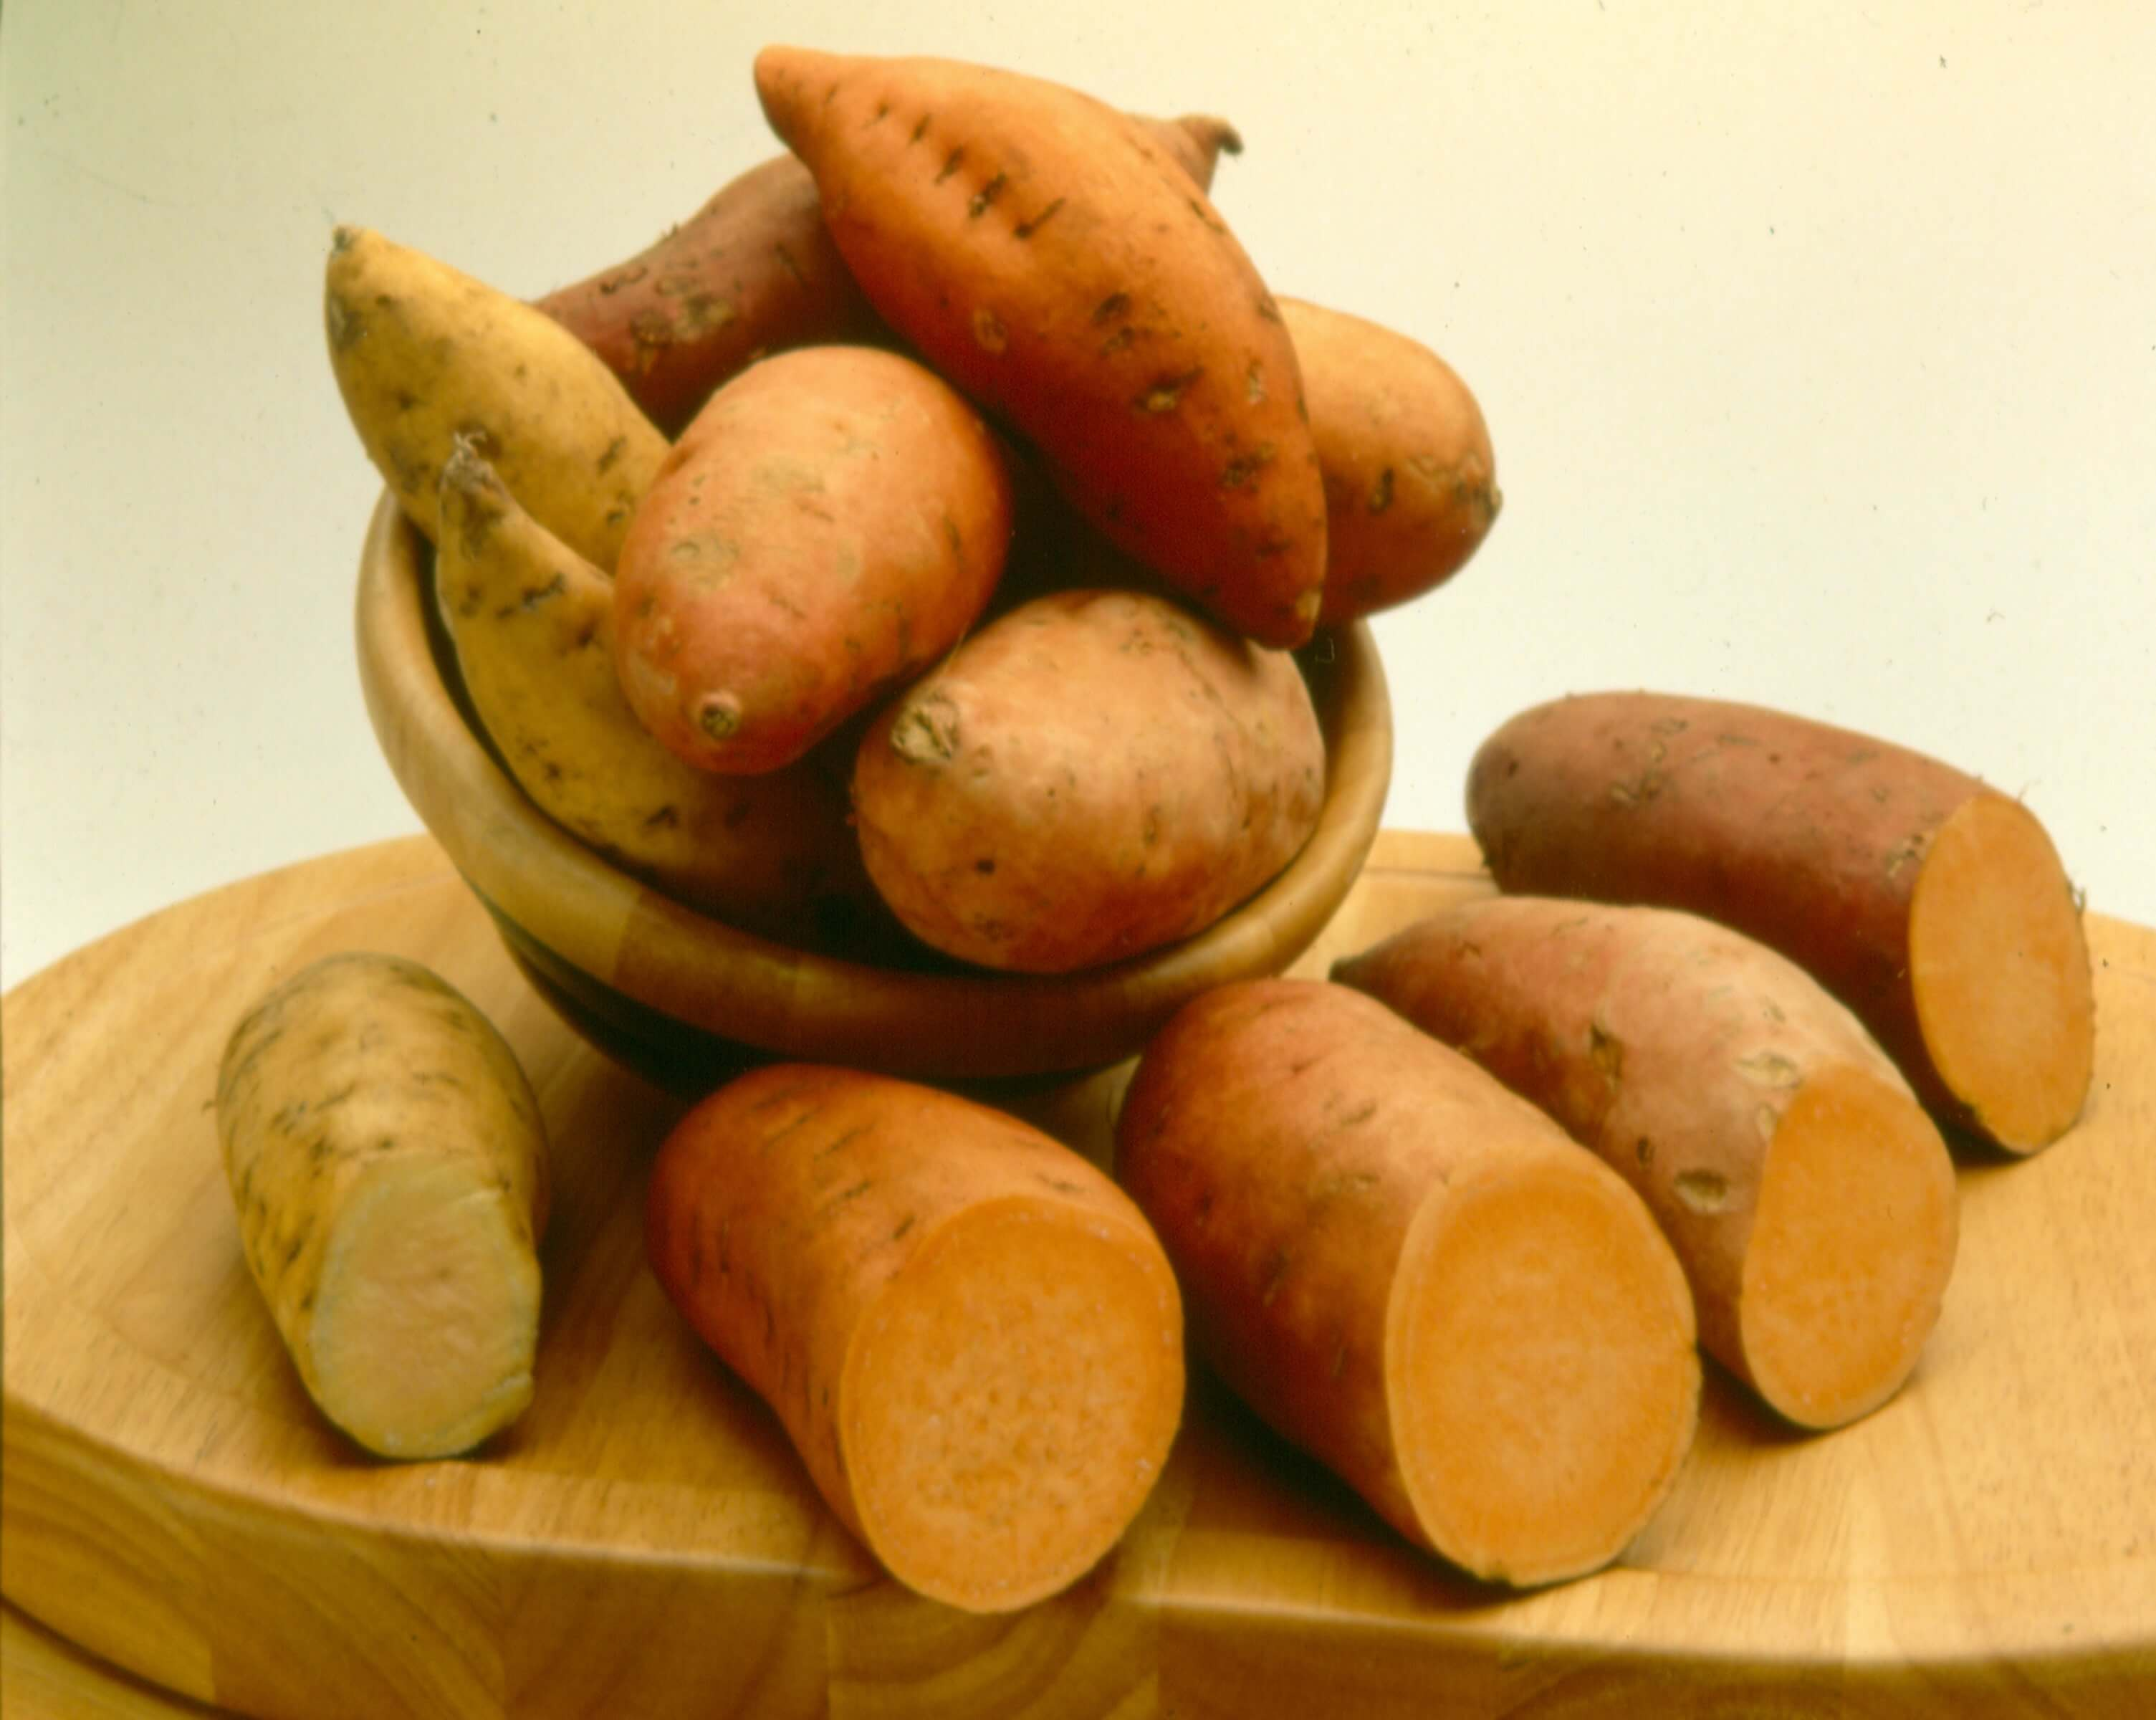 Sweet potatoes tasty farmer - Potatoes choose depending food want prepare ...